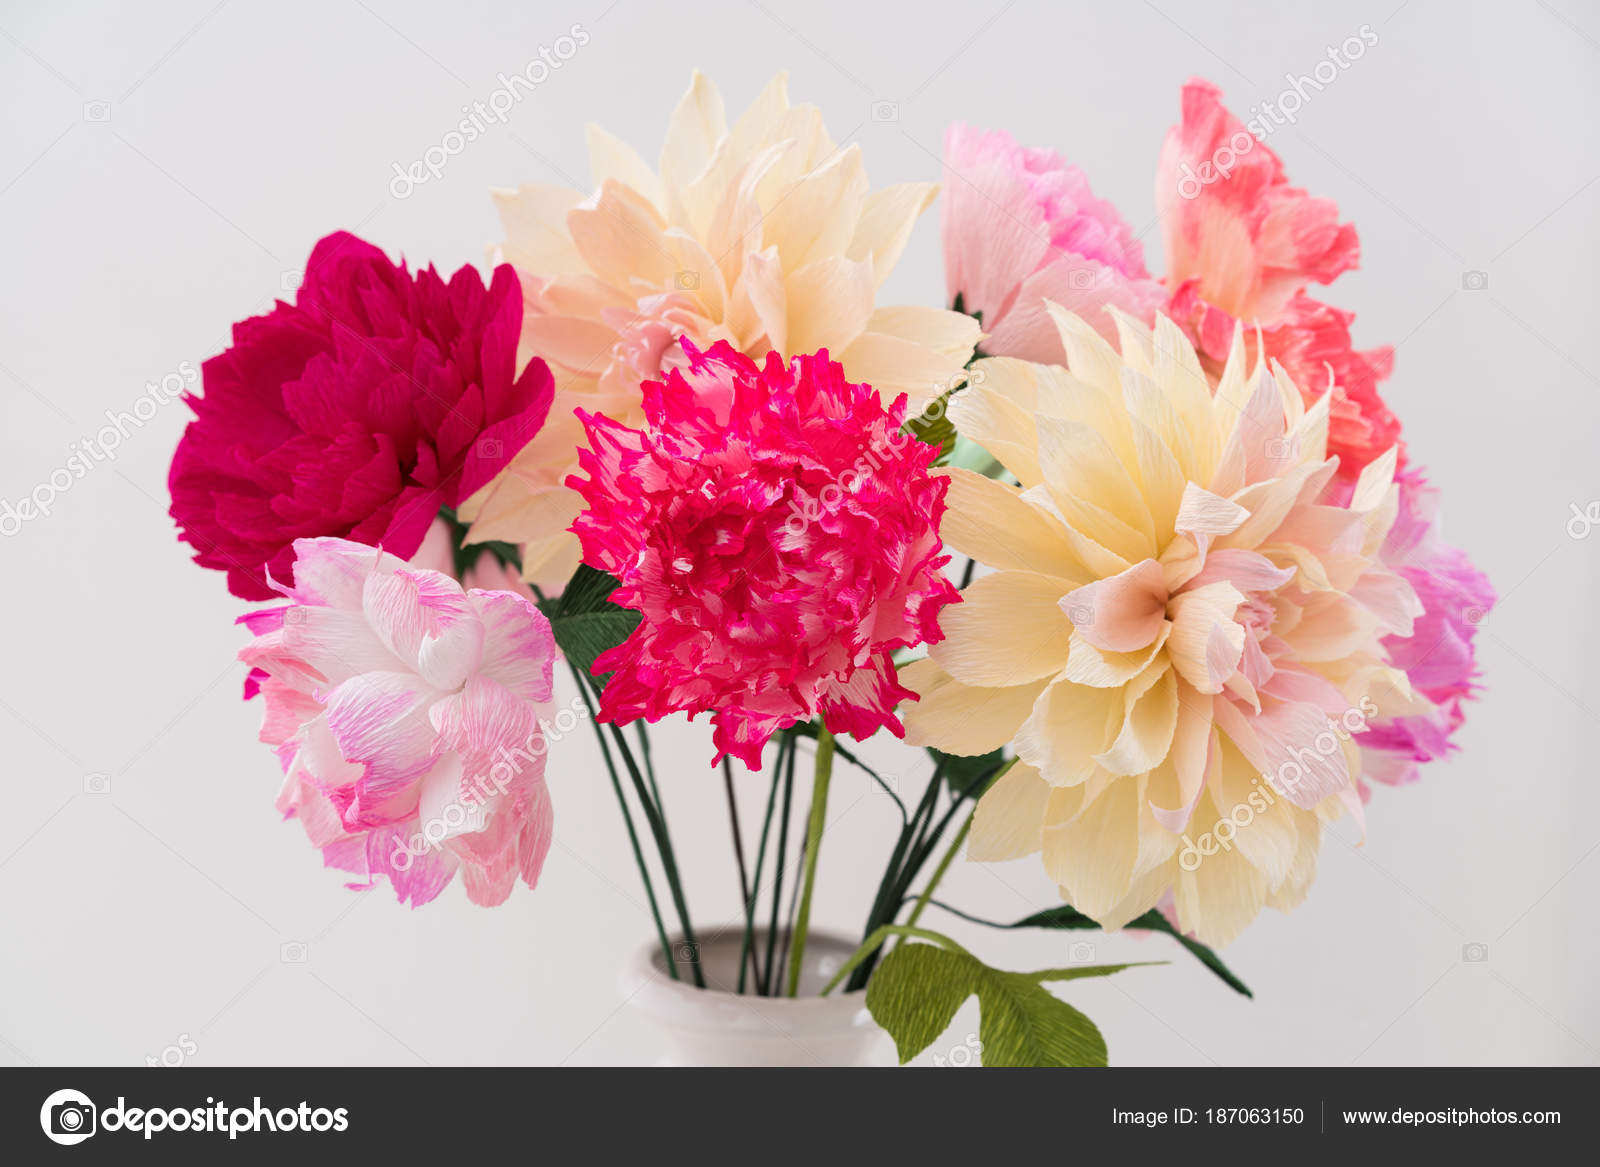 Crepe paper flower bouquet — Stock Photo © ECoelfen #187063150